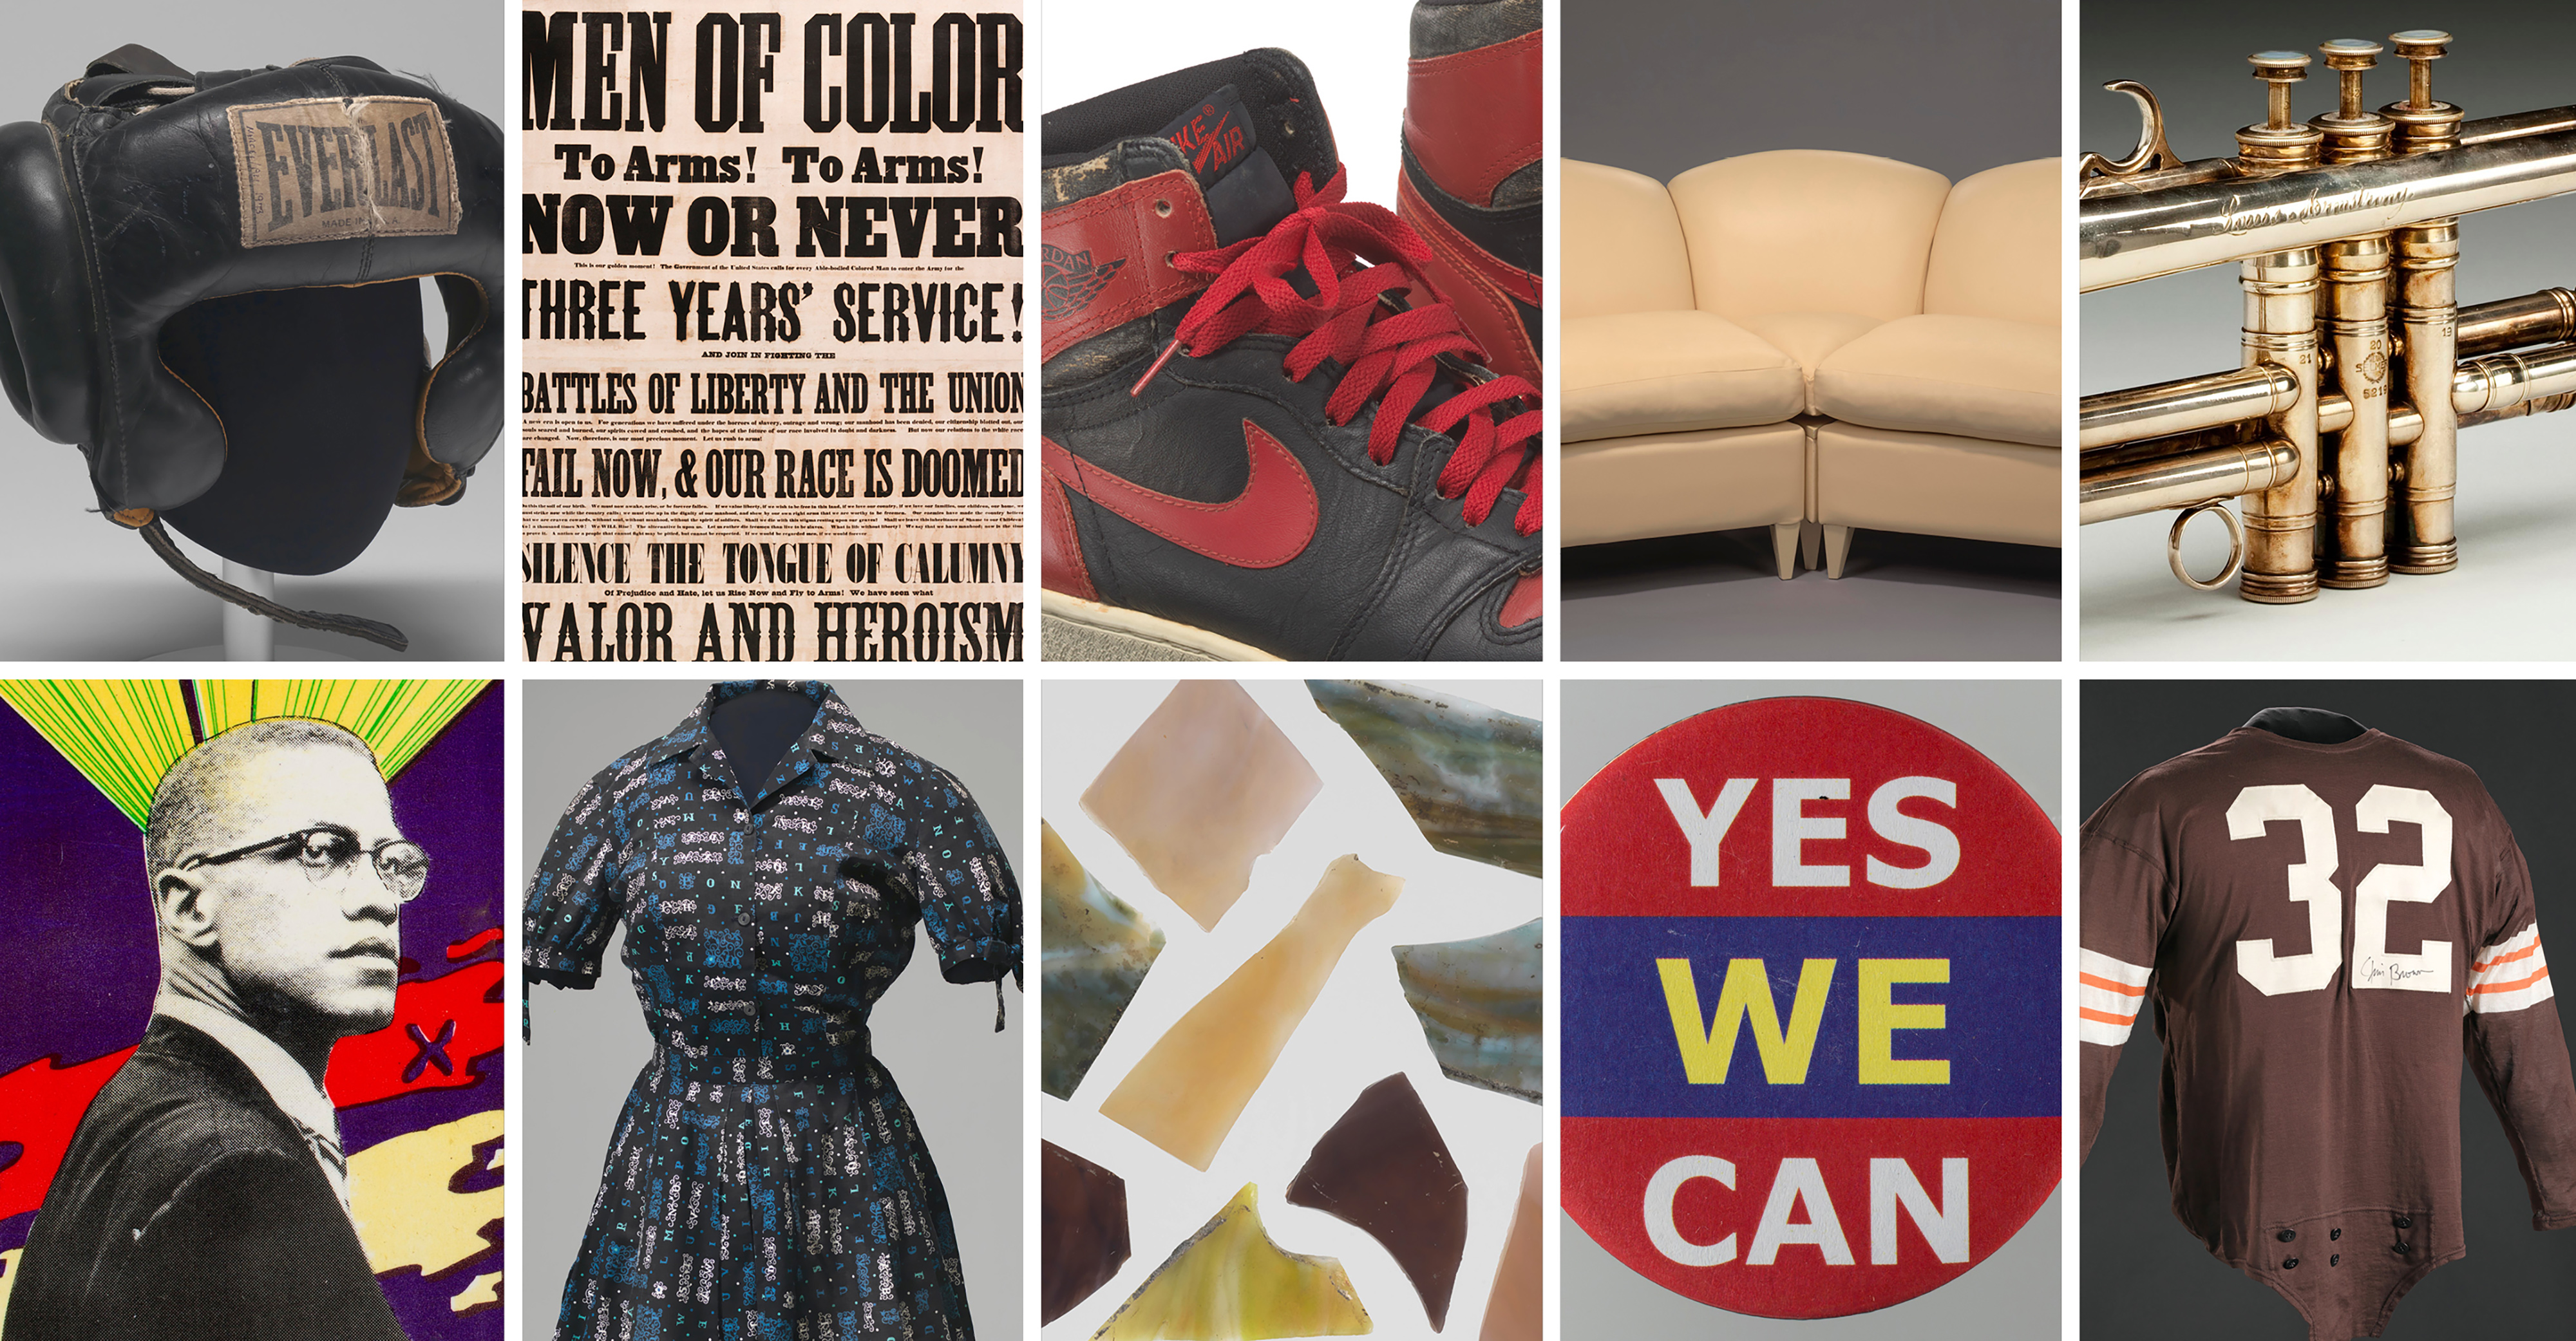 AN EXPANSIVE COLLECTION: The museum's thousands of artifacts include, top row, from left: boxing headgear worn by Muhammad Ali; a Civil War recruitment poster written by Frederick Douglass; a pair of Nike's Air Jordan I from 1985; a couch from the set of The Oprah Winfrey Show; and a trumpet owned by Louis Armstrong. Shown on the bottom row, from left: A button depicting Malcolm X; the dress worn by Carlotta Walls when she integrated Little Rock Central High School in 1957; shards of stained glass from the bombing of the 16th Street Baptist Church in Birmingham in 1963; a button from Barack Obama's 2008 presidential campaign; and a jersey worn by Jim Brown of the Cleveland Browns.